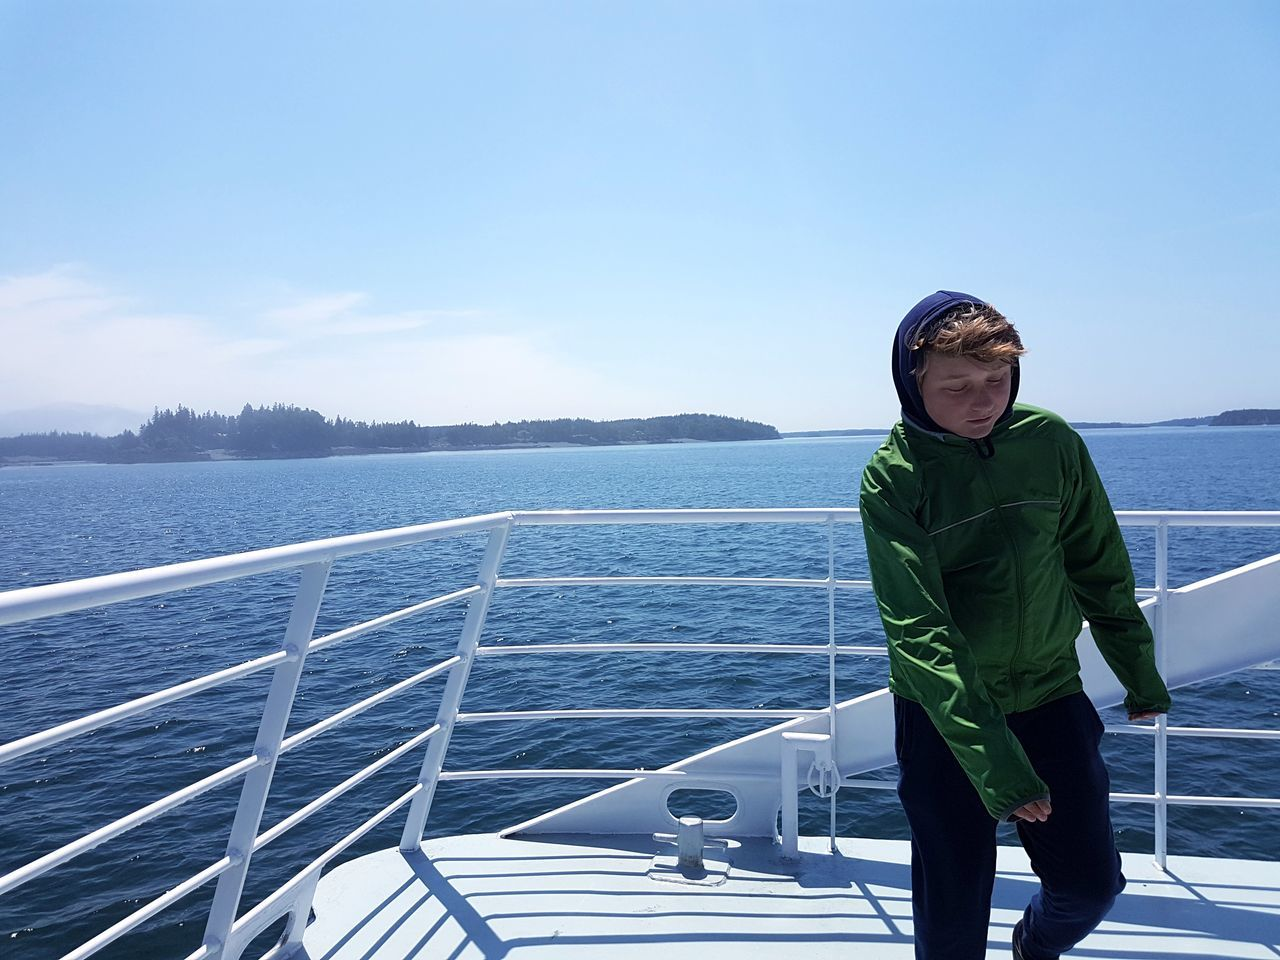 sea, real people, water, one person, lifestyles, leisure activity, nautical vessel, standing, nature, sky, outdoors, day, beauty in nature, sailing, men, horizon over water, vacations, boat deck, young adult, people